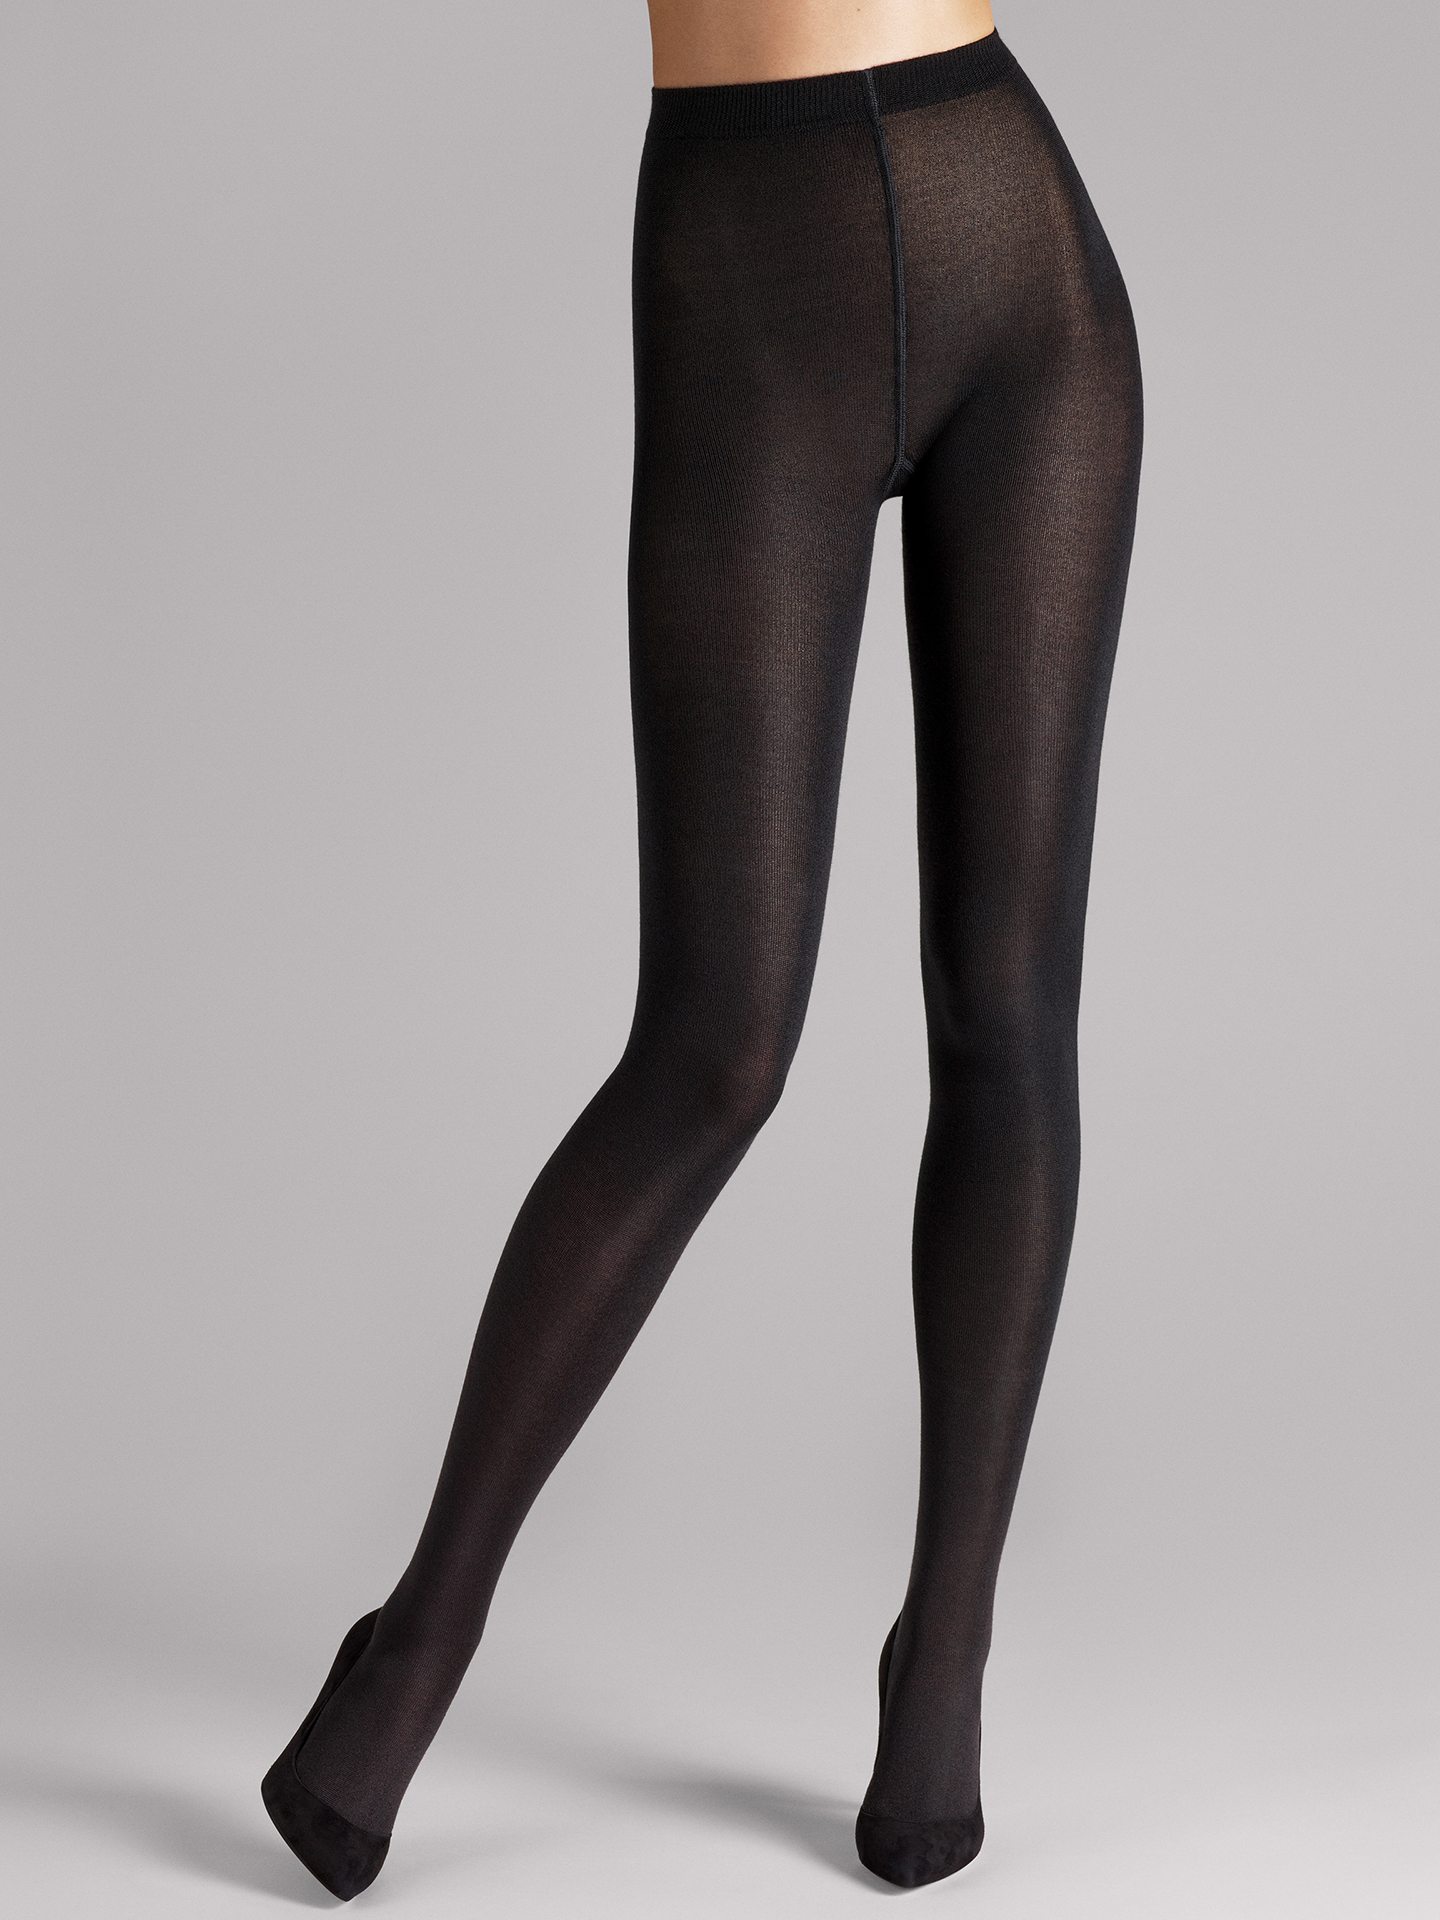 Cashmere/Silk Tights